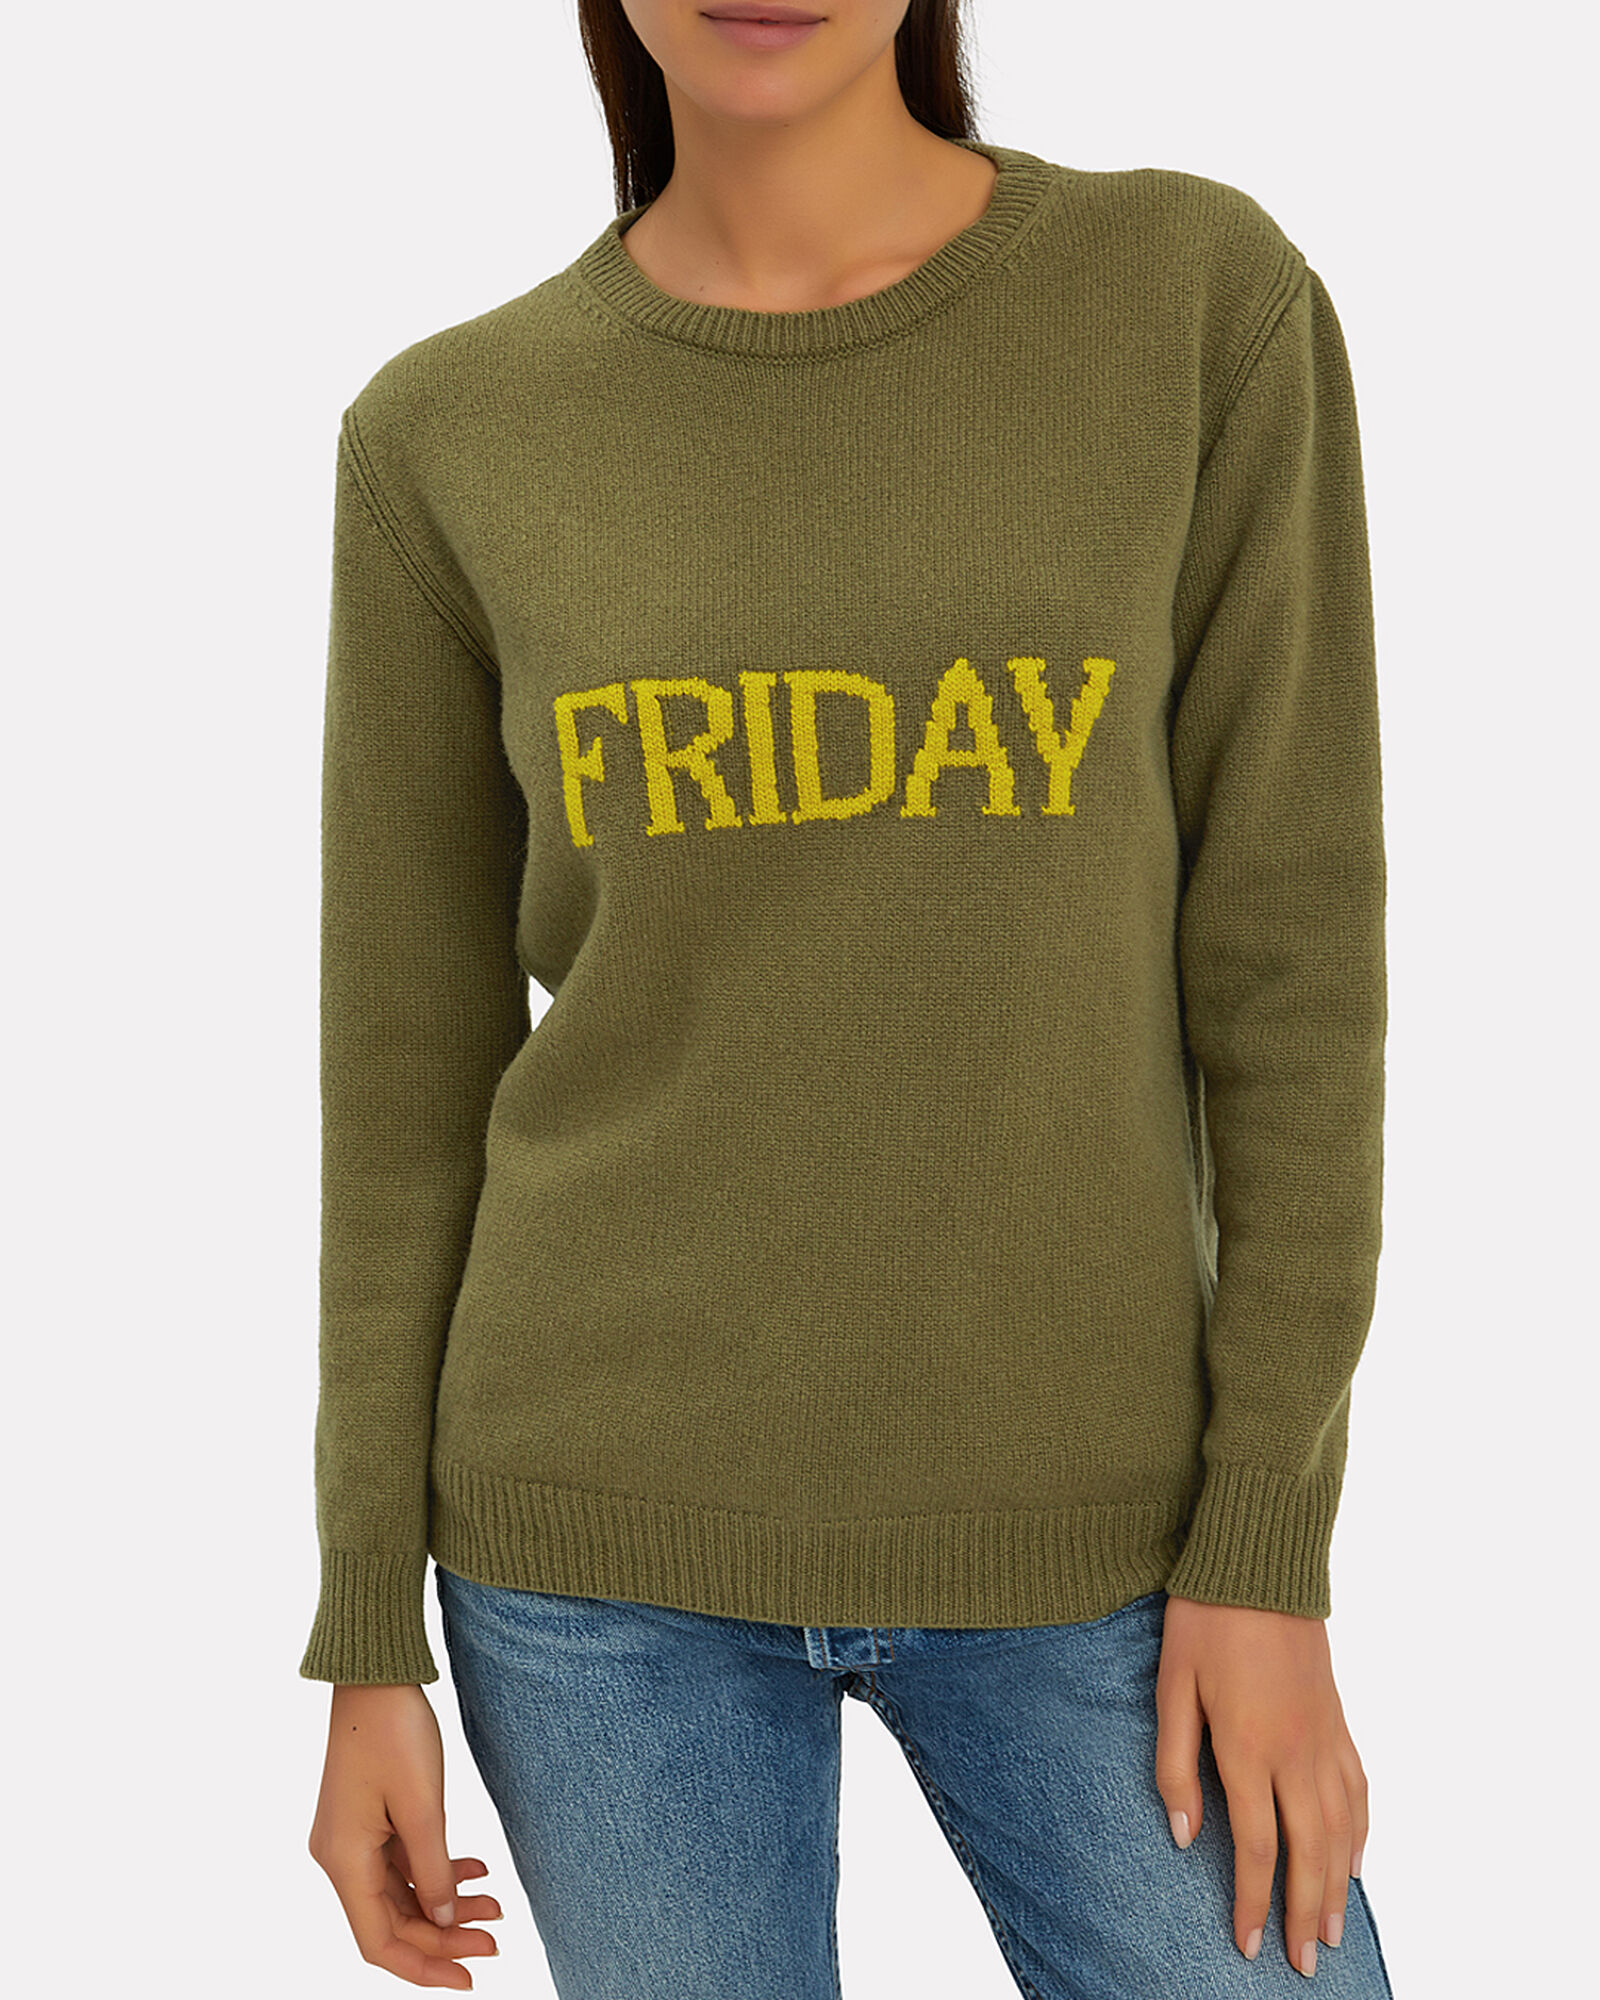 Friday Wool-Cashmere Crewneck Sweater, OLIVE/ARMY, hi-res